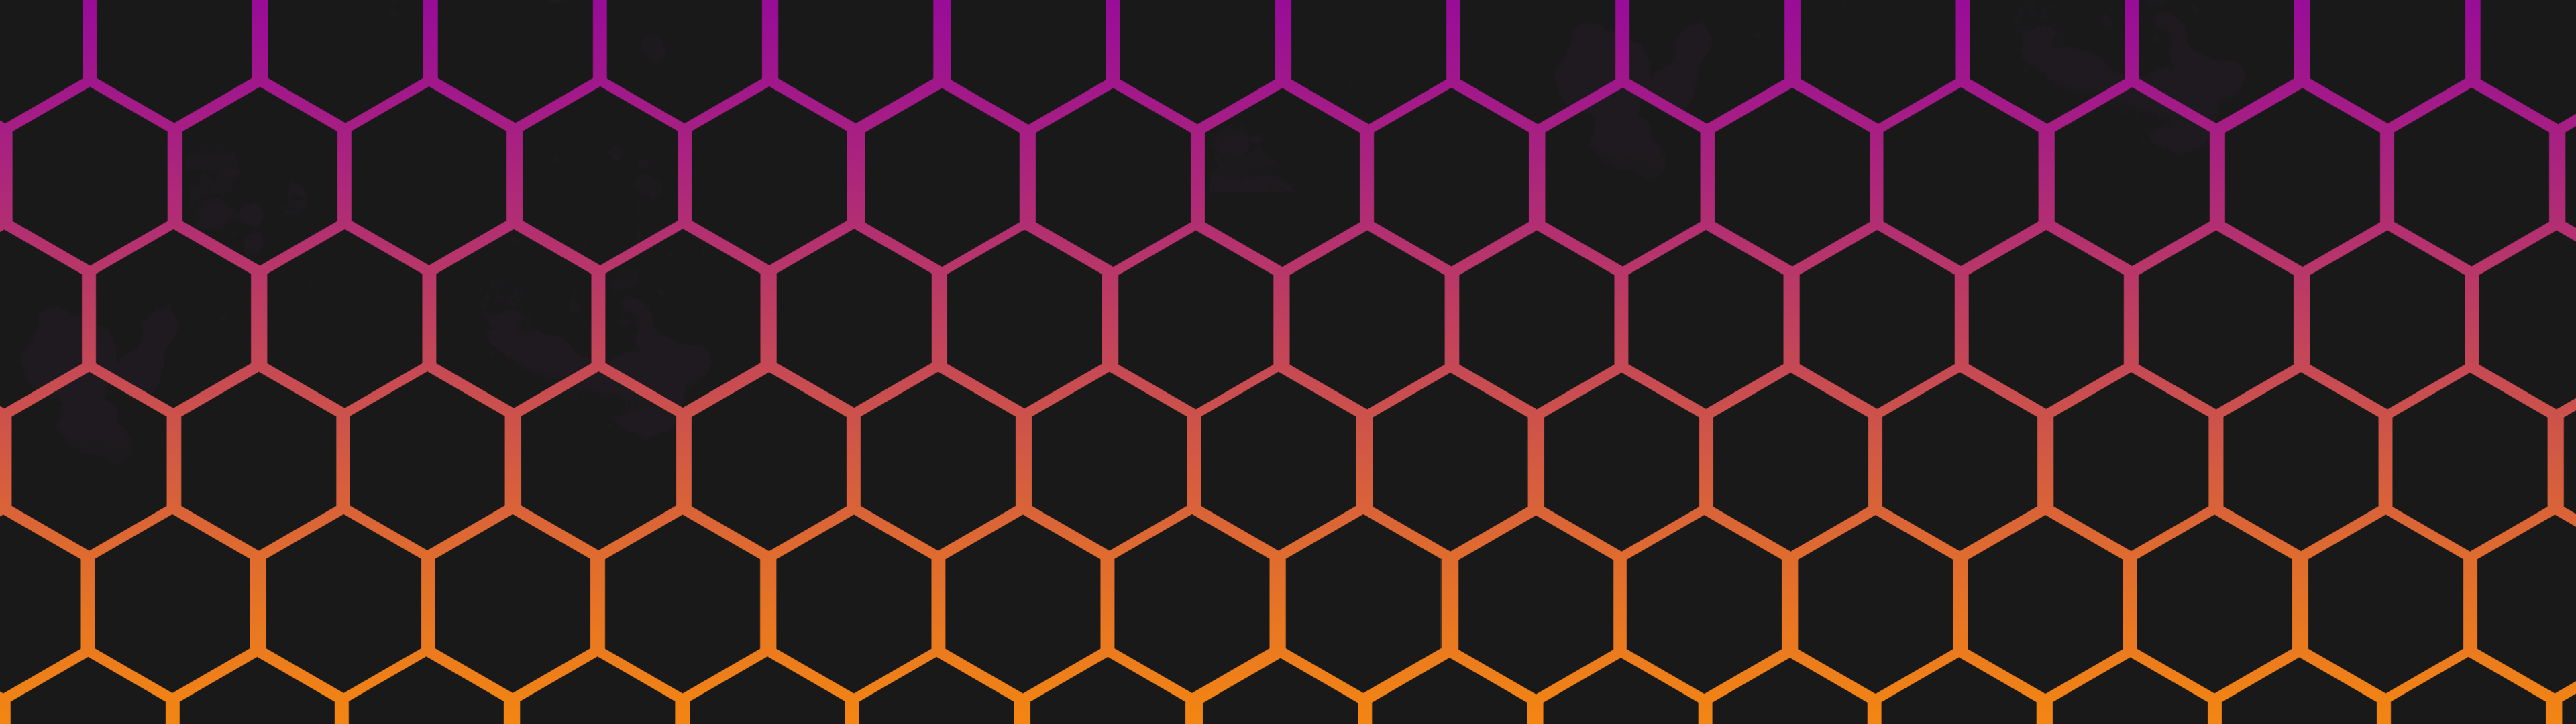 Electric Hive wallpaper that I made [1920x1080] GlobalOffensive 3840x1080